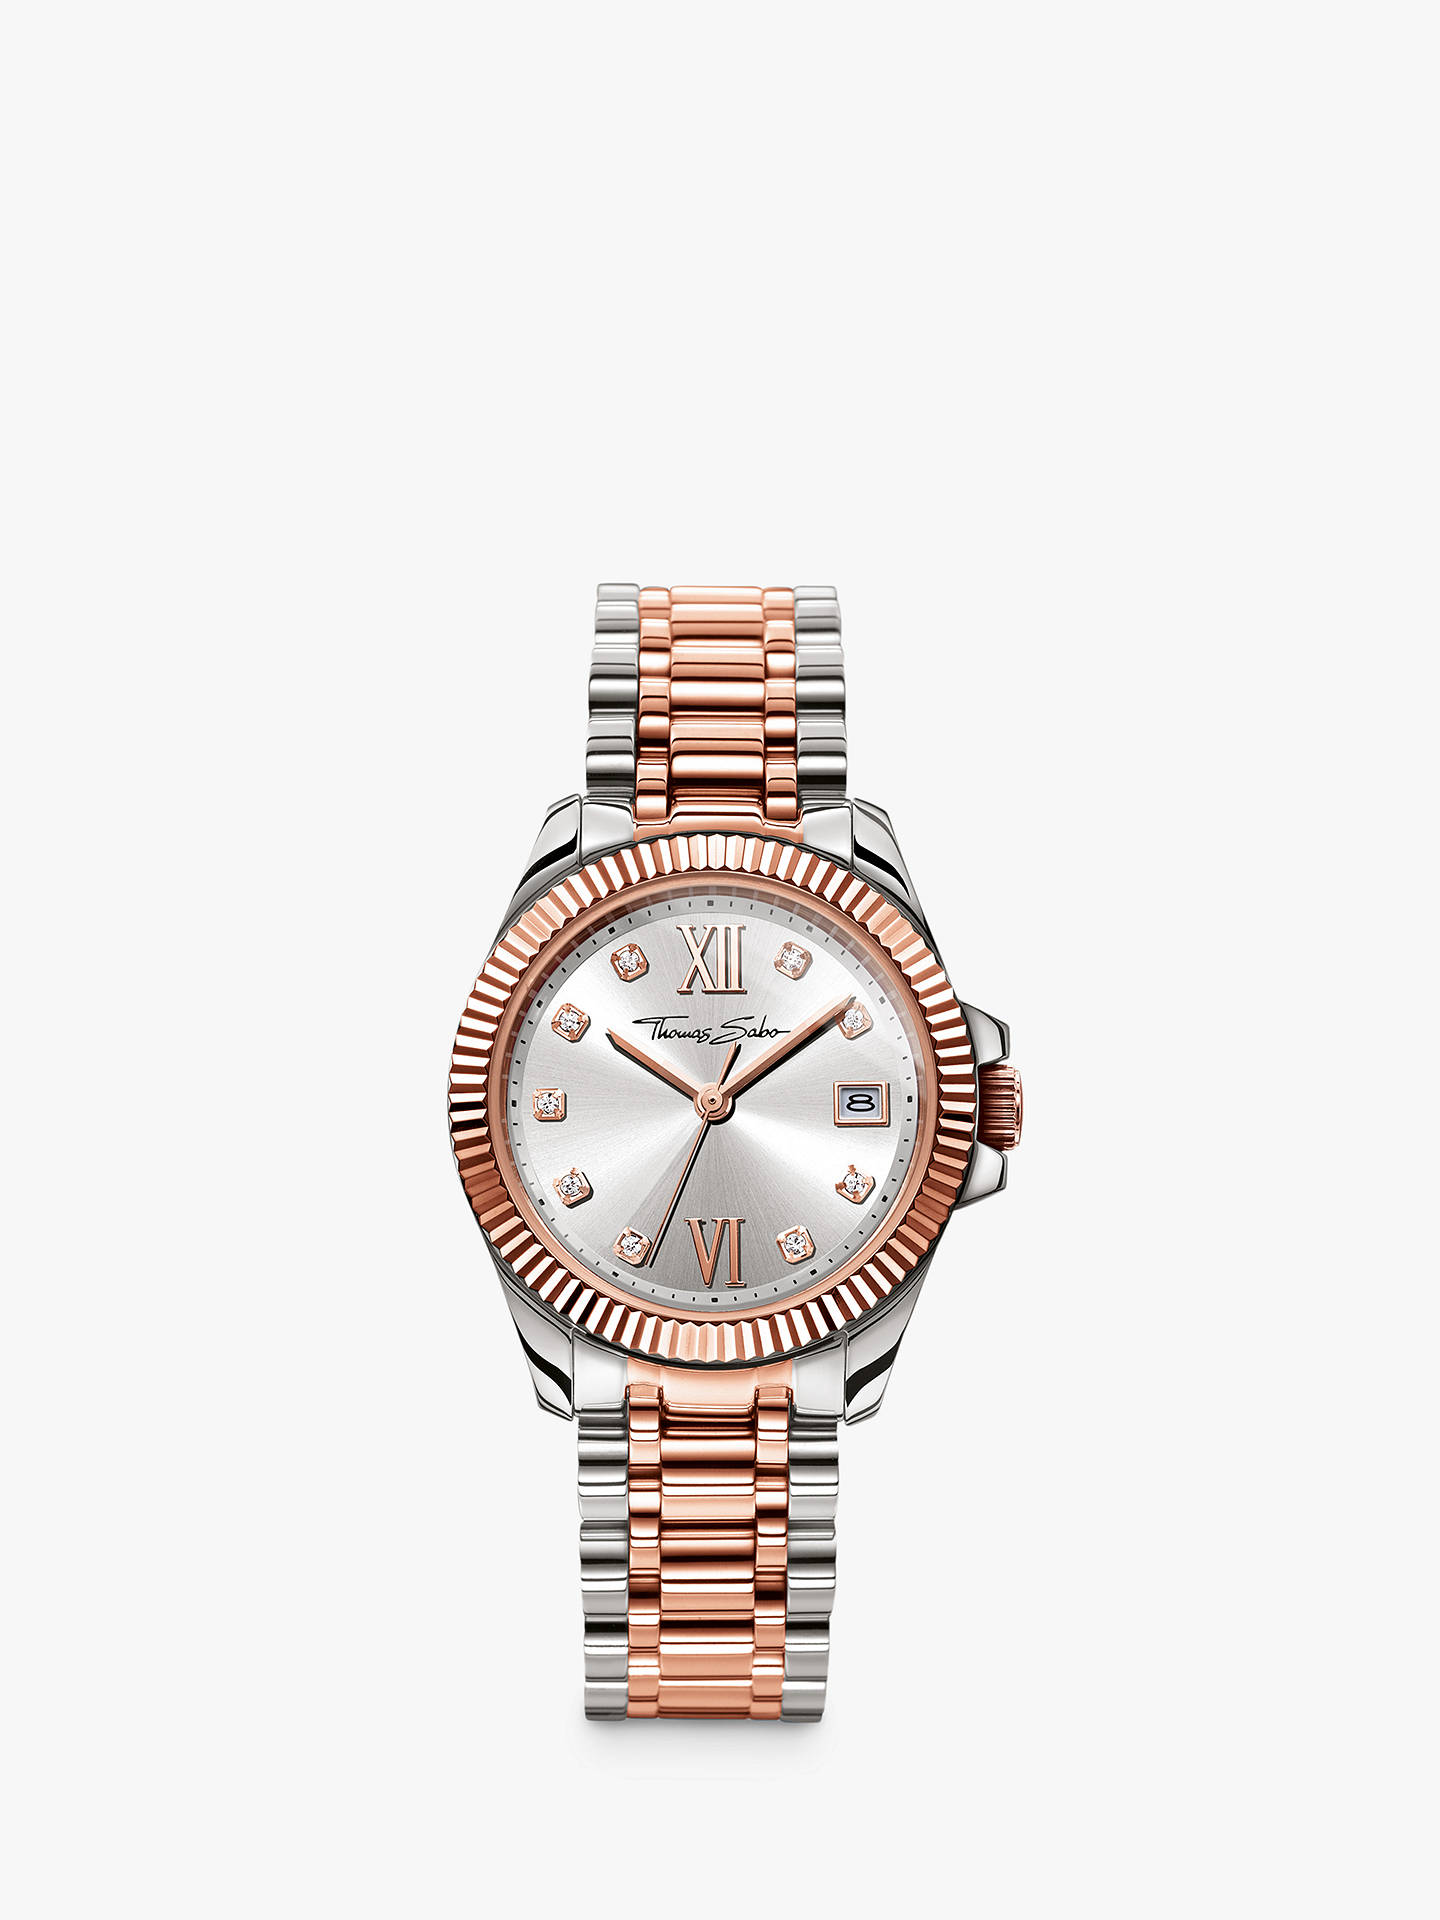 Buy THOMAS SABO Women's Divine Date Crystal Bracelet Strap Watch, Silver/Rose Gold WA0219-272-201-33 Online at johnlewis.com